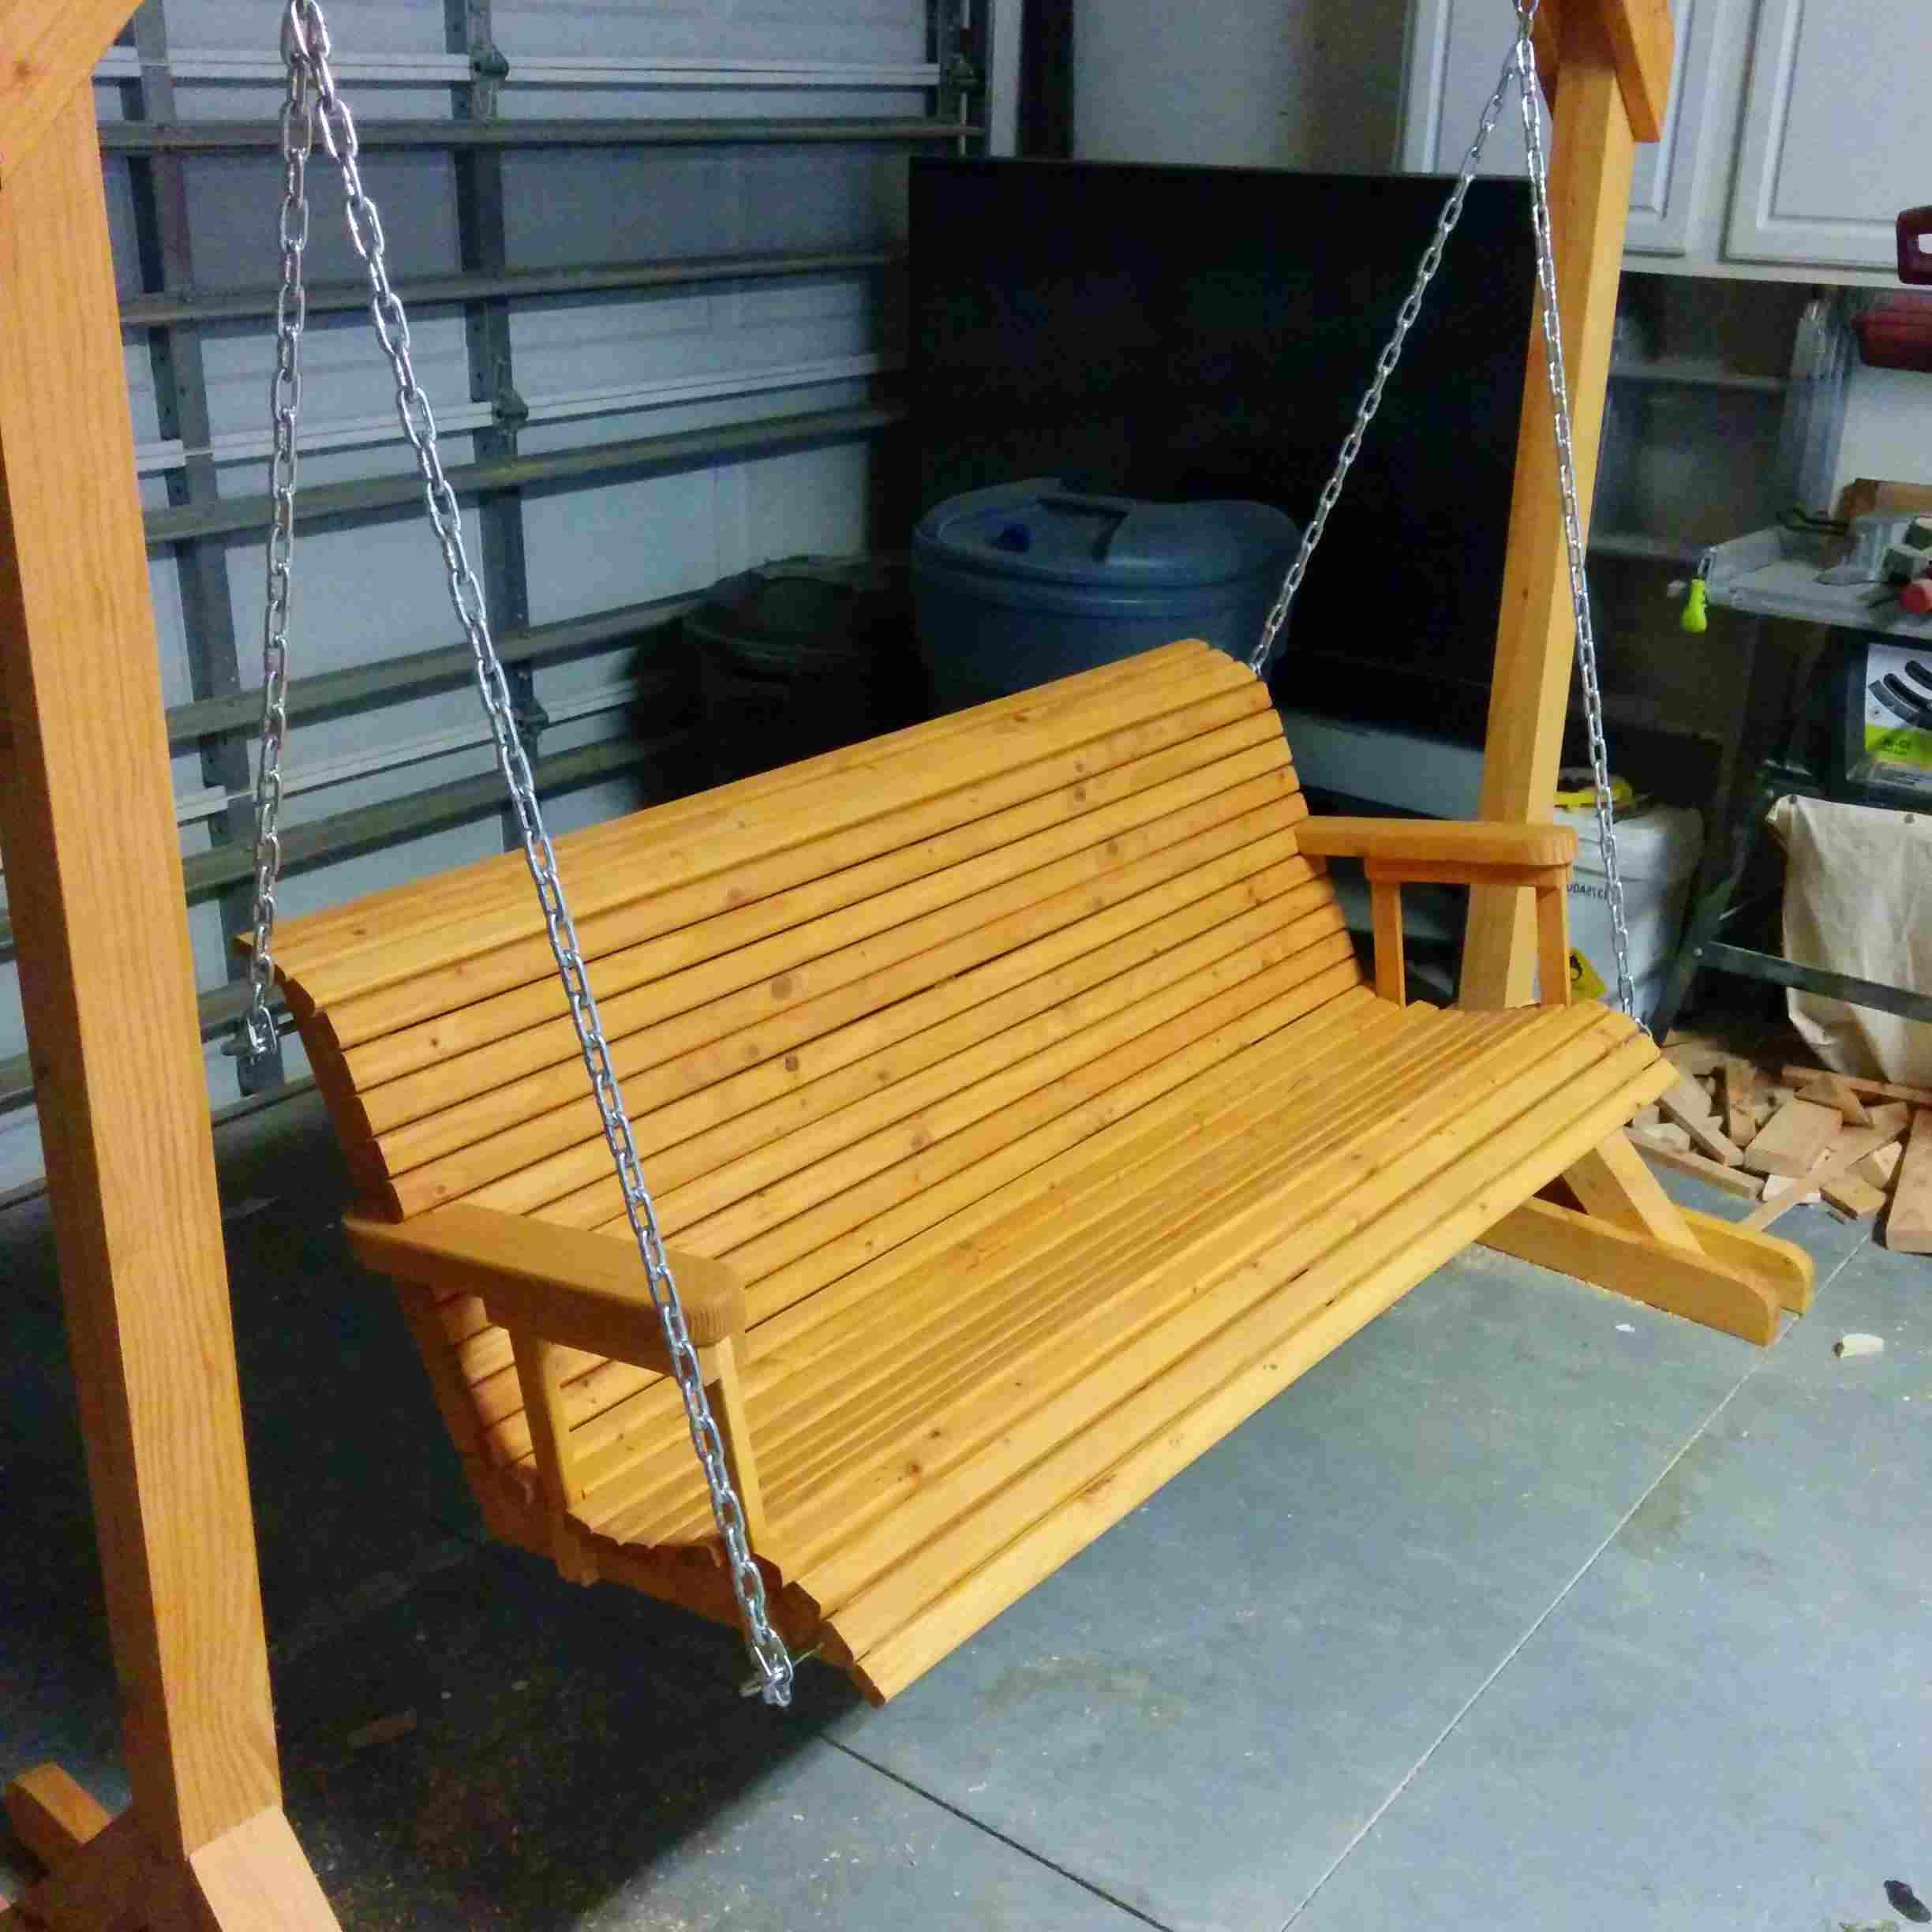 Recent 12 Free Porch Swing Plans To Build At Home Intended For Contoured Classic Porch Swings (View 16 of 30)